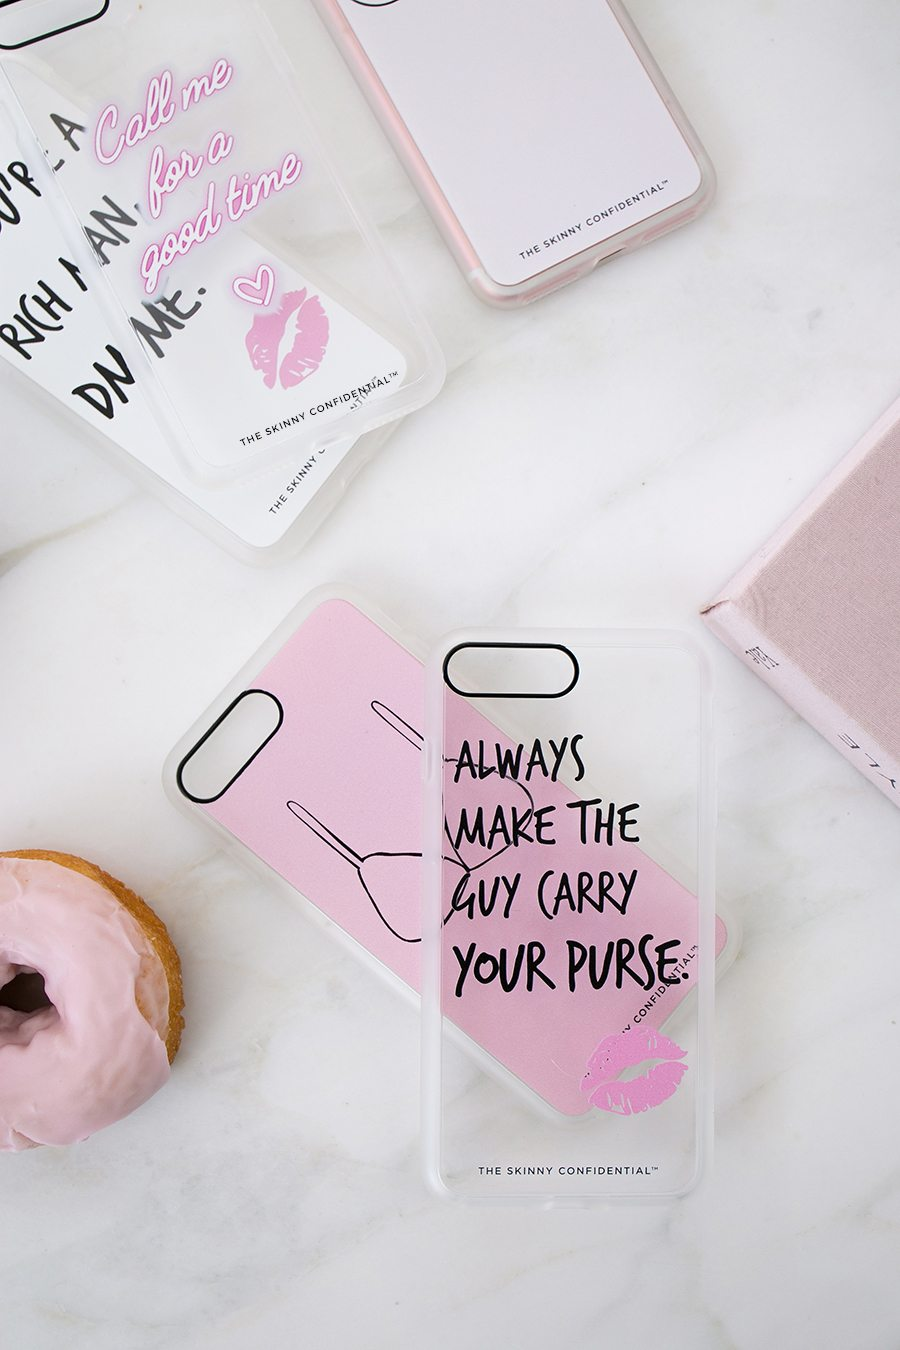 the-skinny-confidential-x-casetify-12-by-the-skinny-confidential